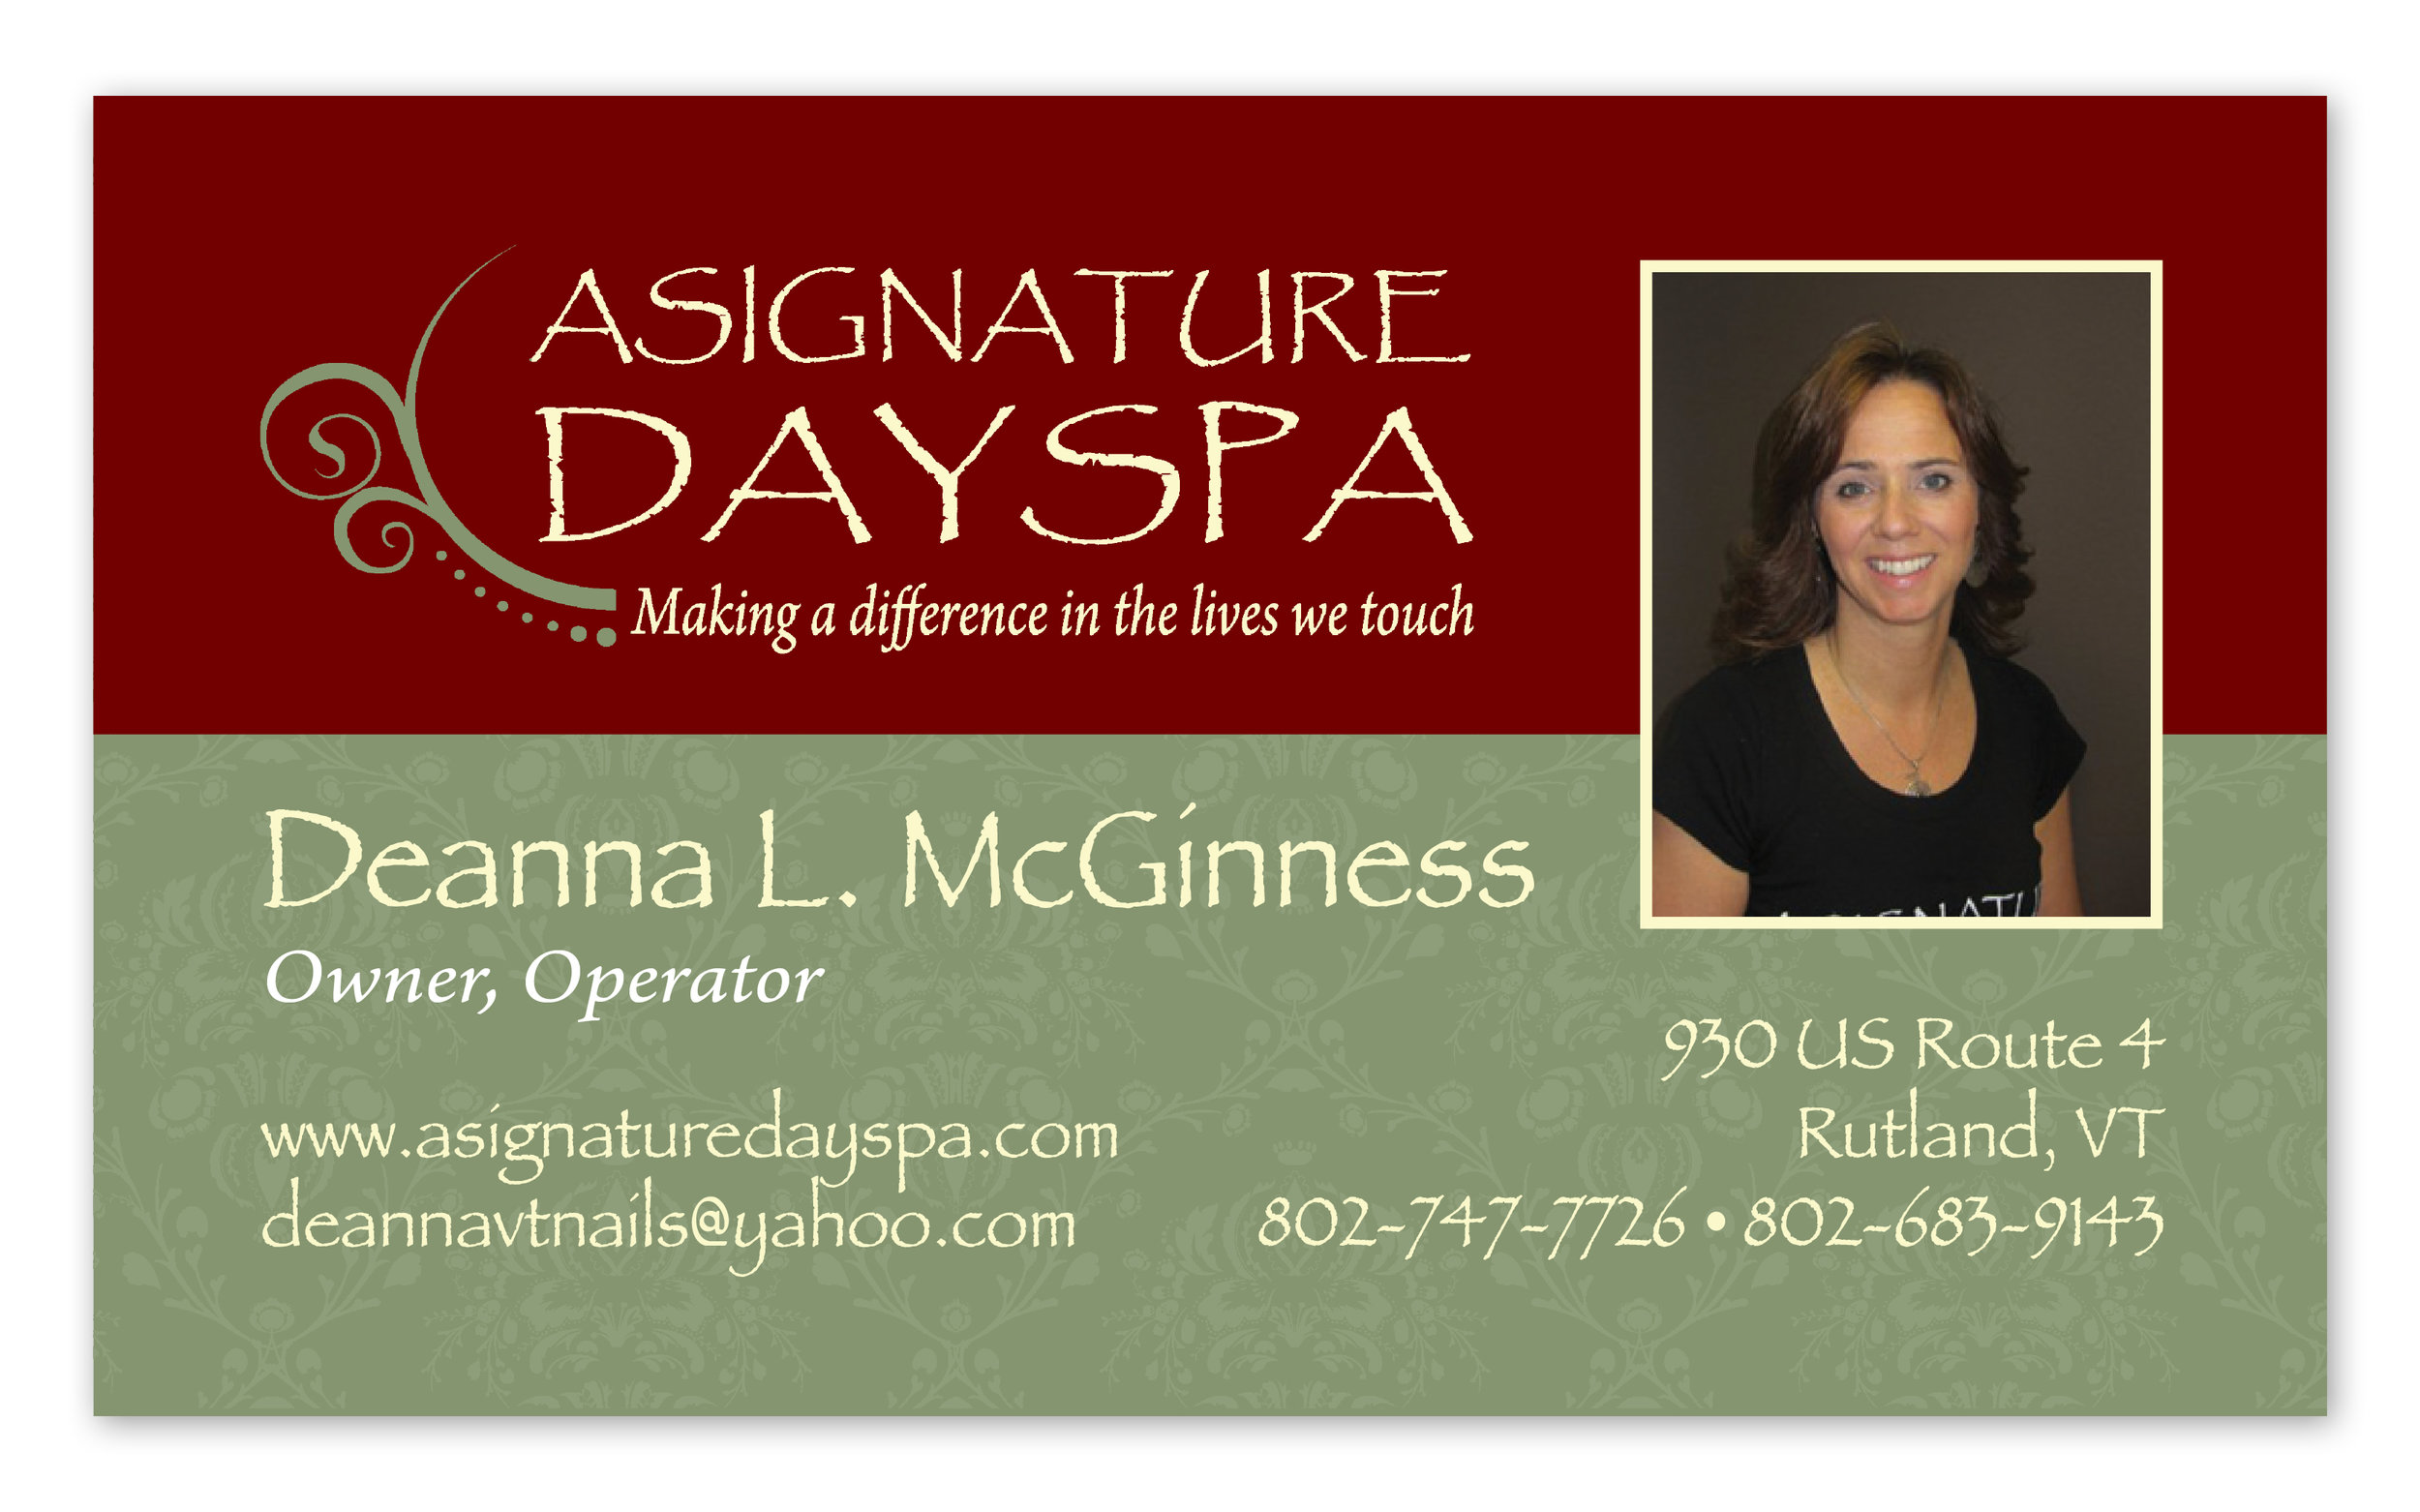 Client:  A Signature Day Spa